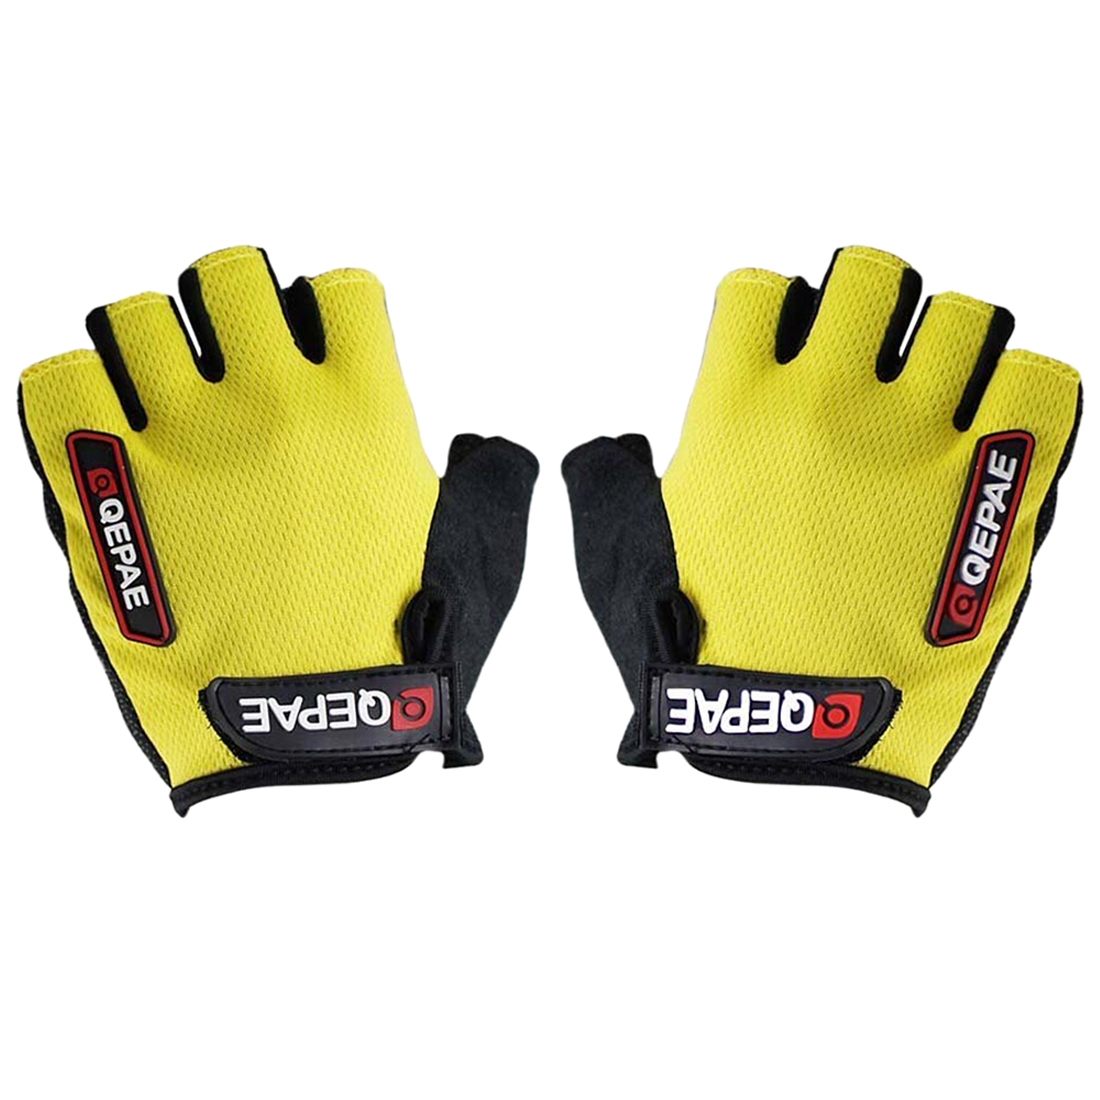 Running Gloves Qepae NEW Cycling Bicycle Half Finger Silicone Glove (Yellow + Black, S M L XXL) qepae 043a outdoor cycling half finger gloves black red l pair